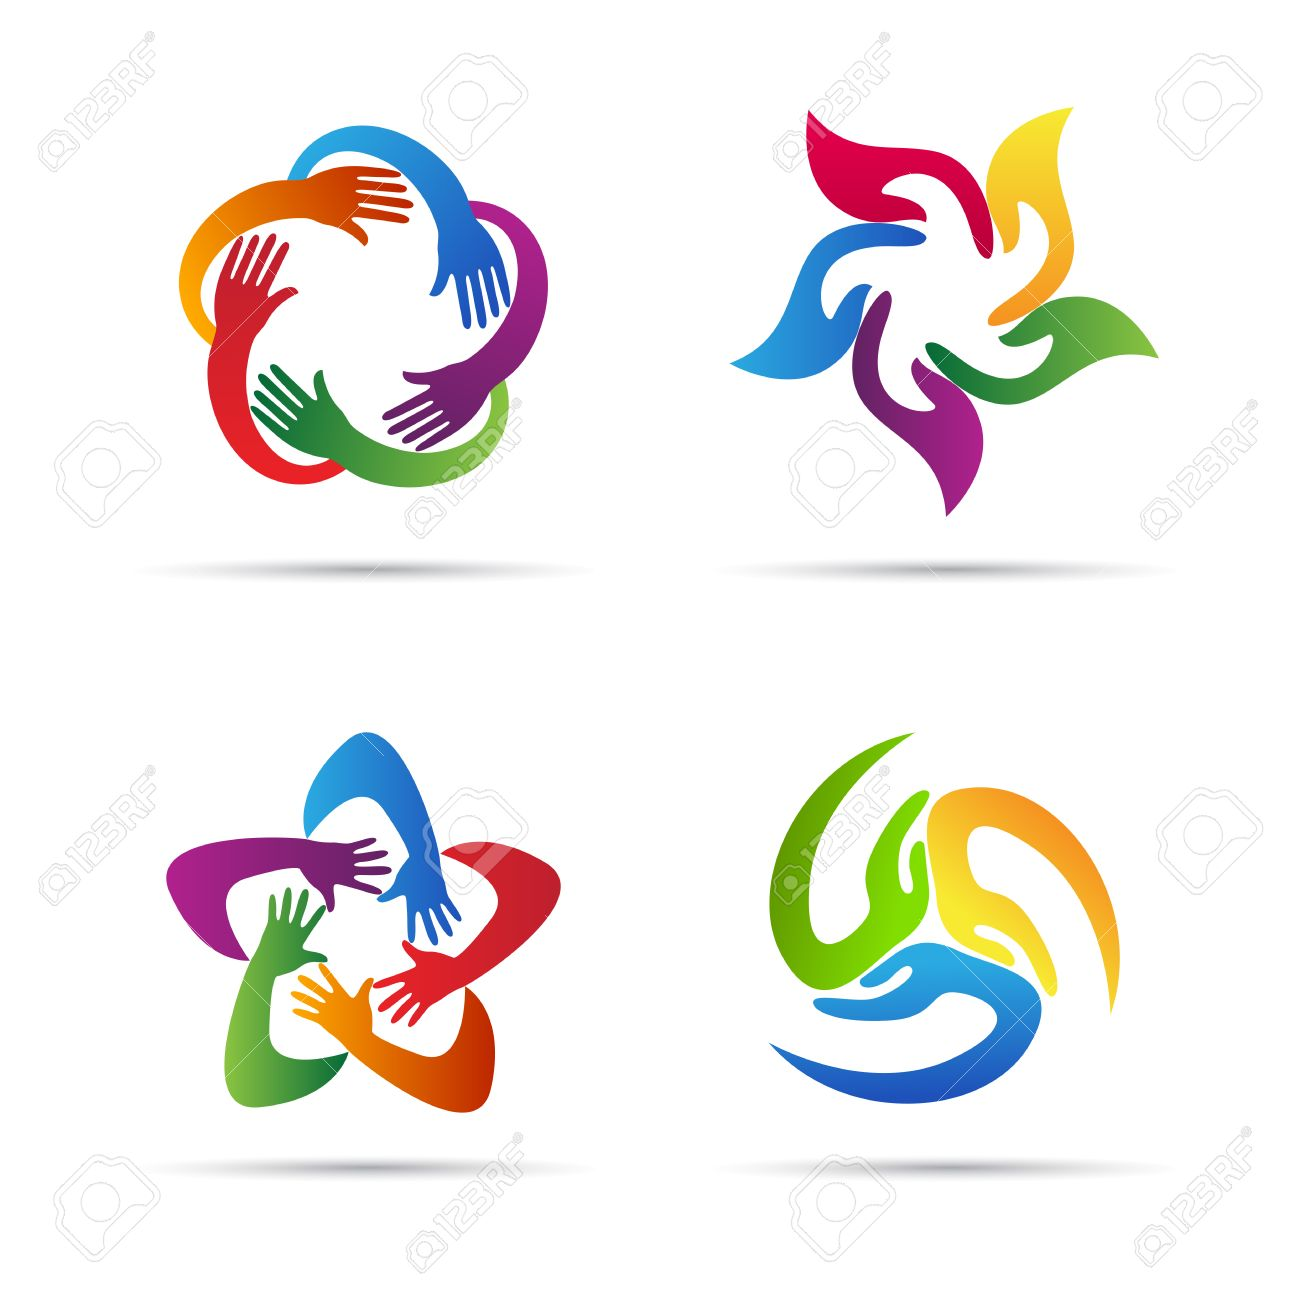 abstract hands vector design represents teamwork unity signs